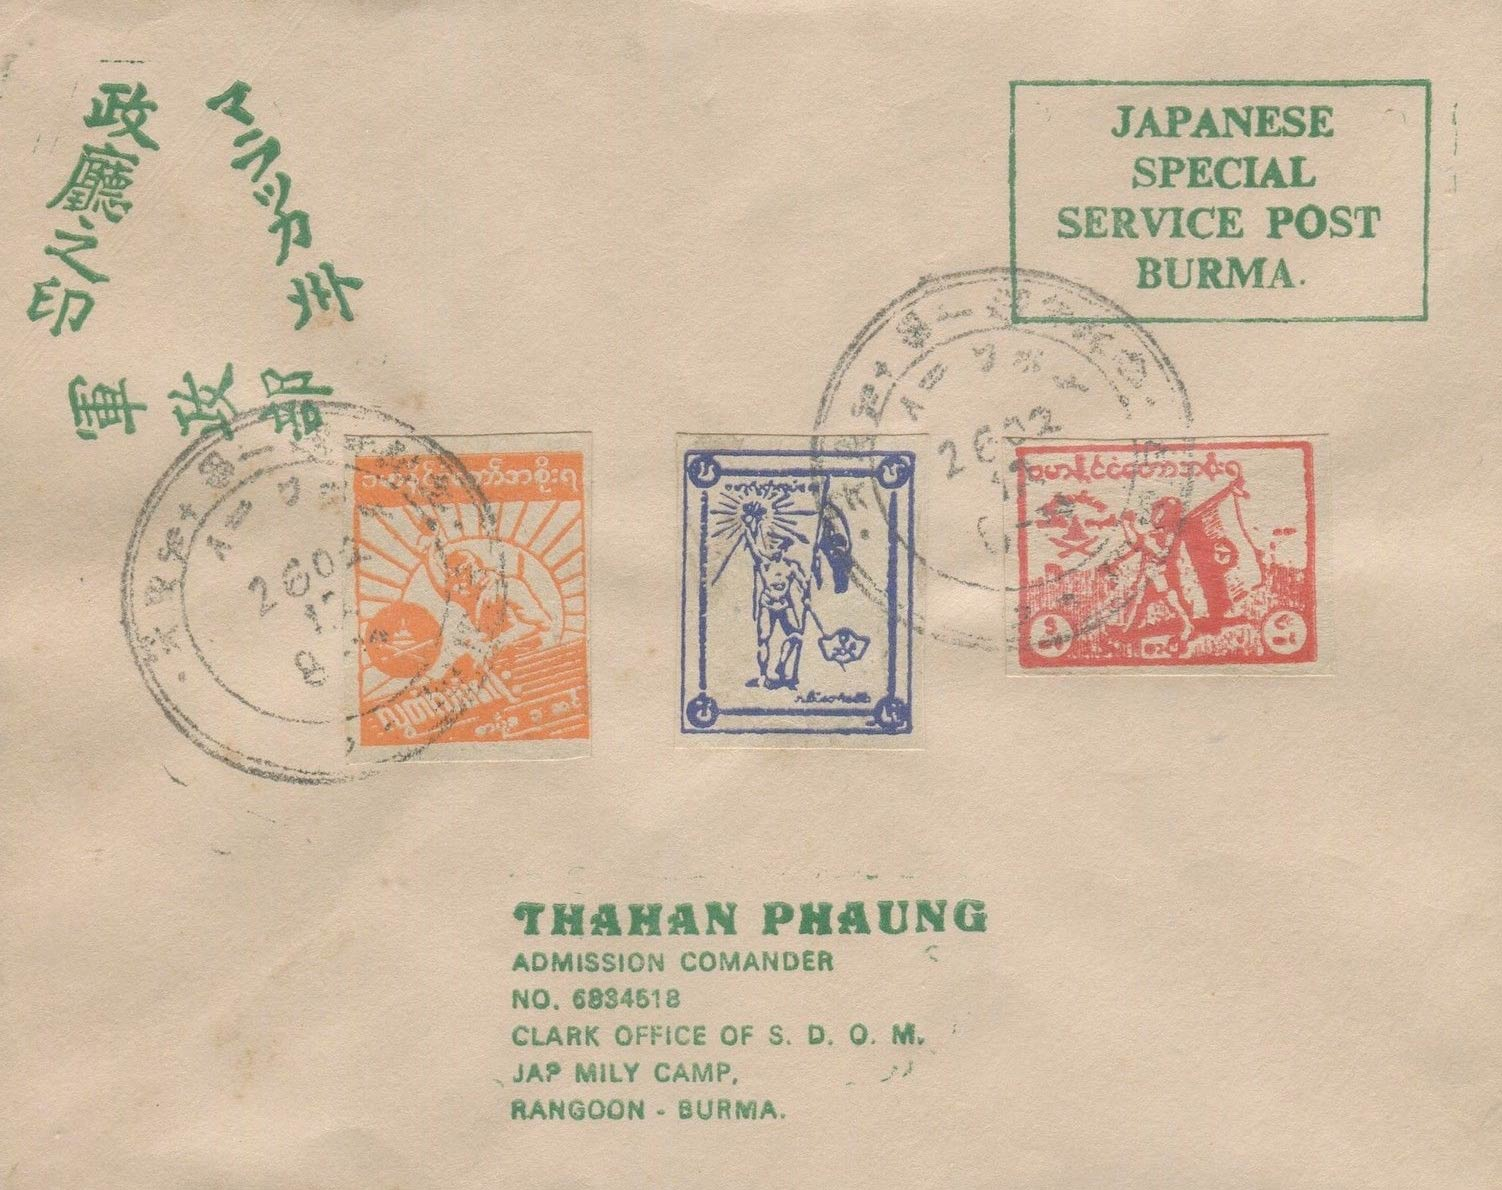 Burma_Japanese-Special-Service-Post_Cover_Forgery13